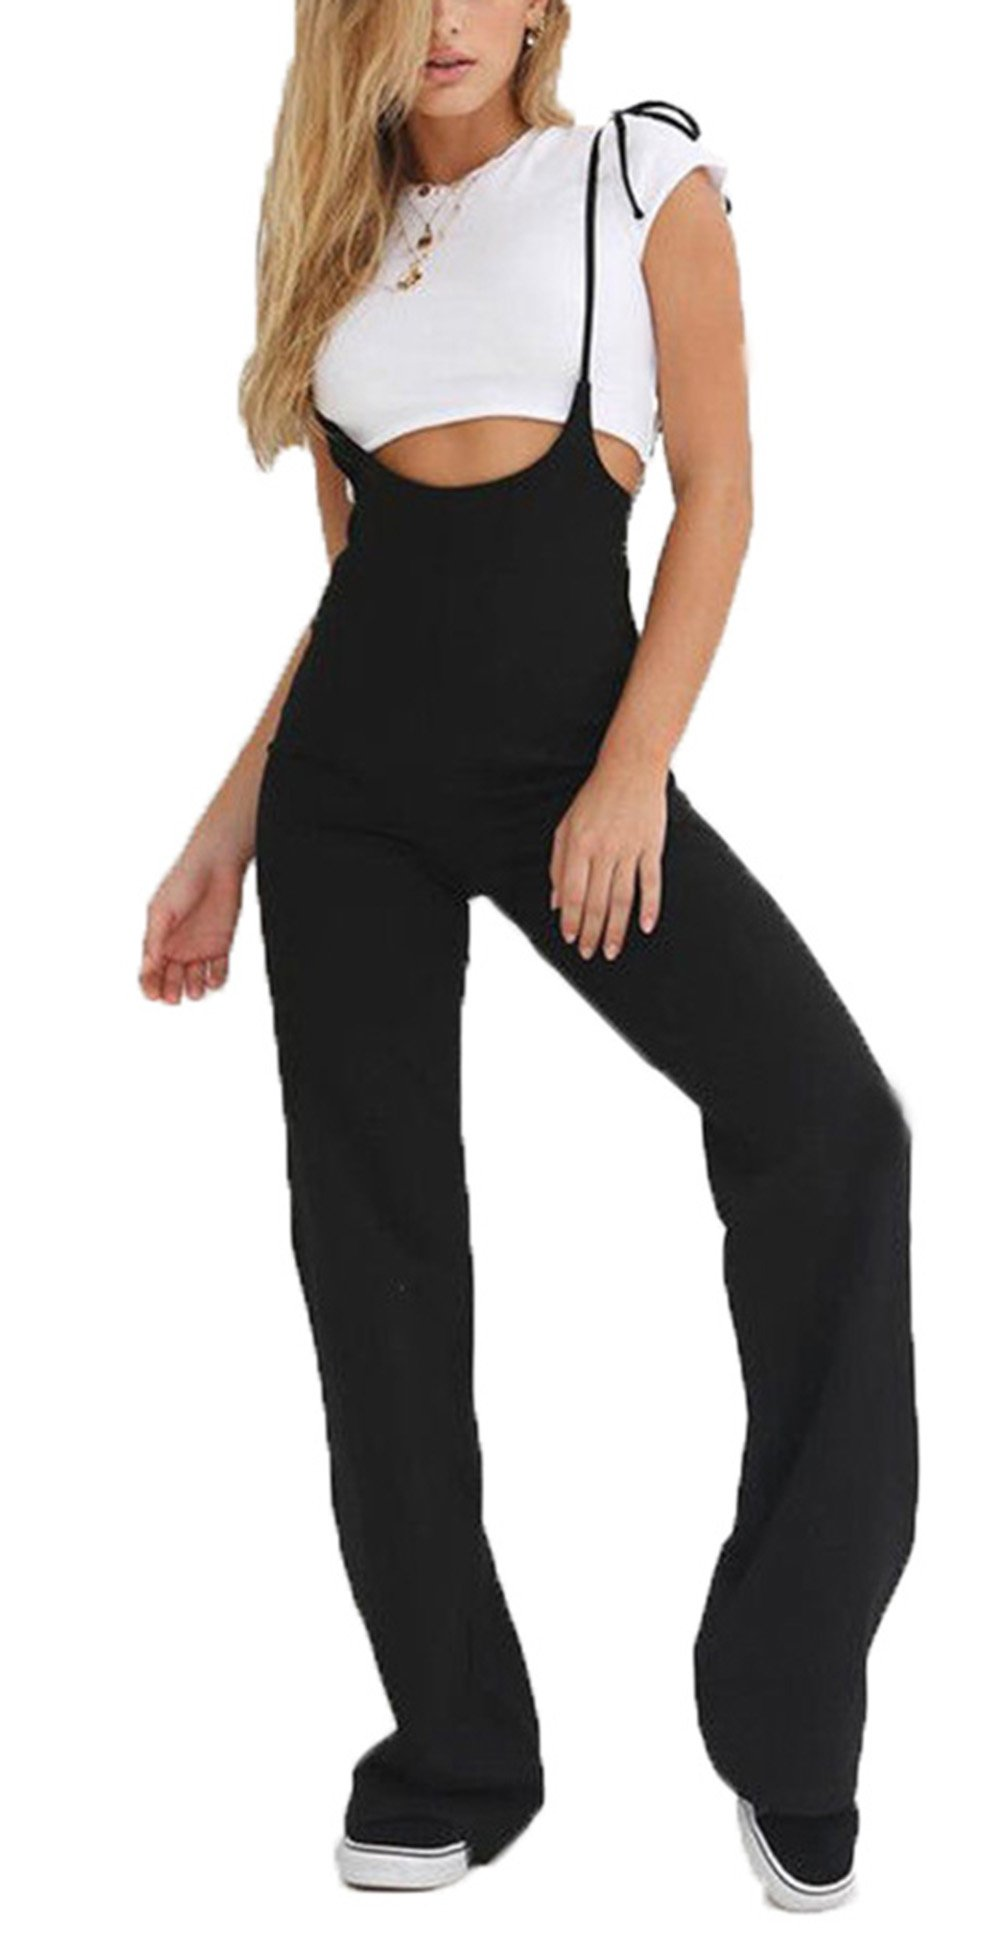 doublebabyjoy Womens High Waist Sexy Spaghetti Strap Jumpsuit Bootcut Solid Black Romper Suspender Pants Trousers (Black, L)